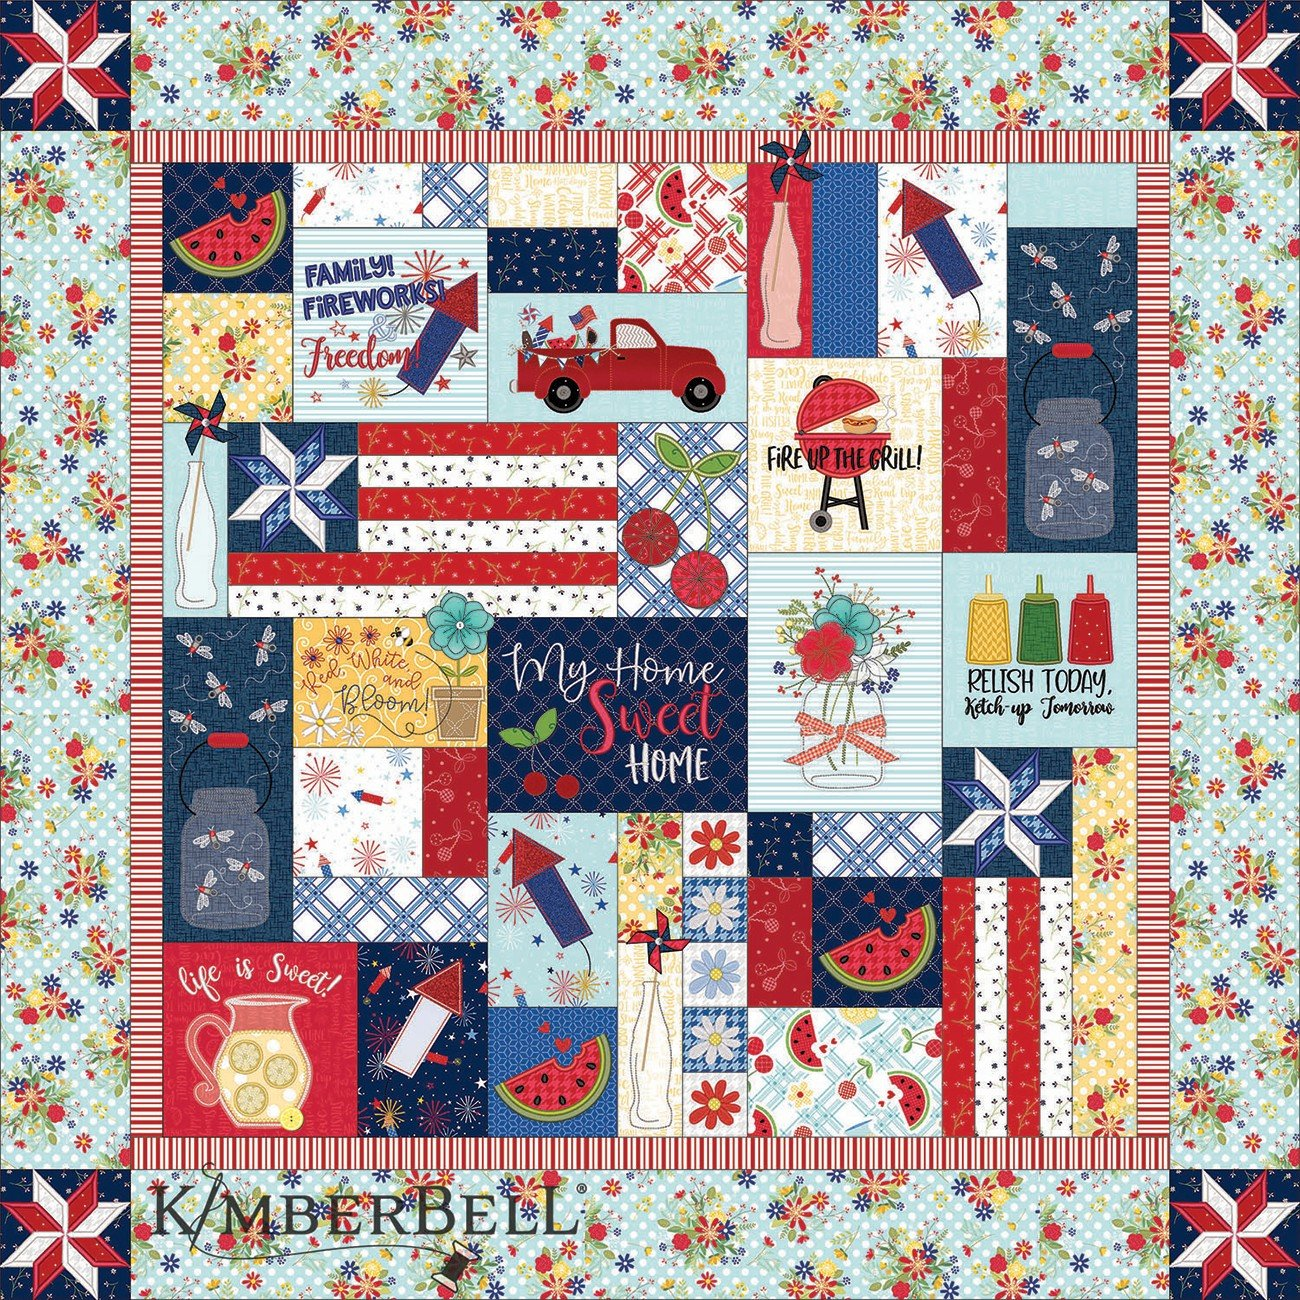 Kimberbell Red White & Bloom Fabric Kit for Quilt